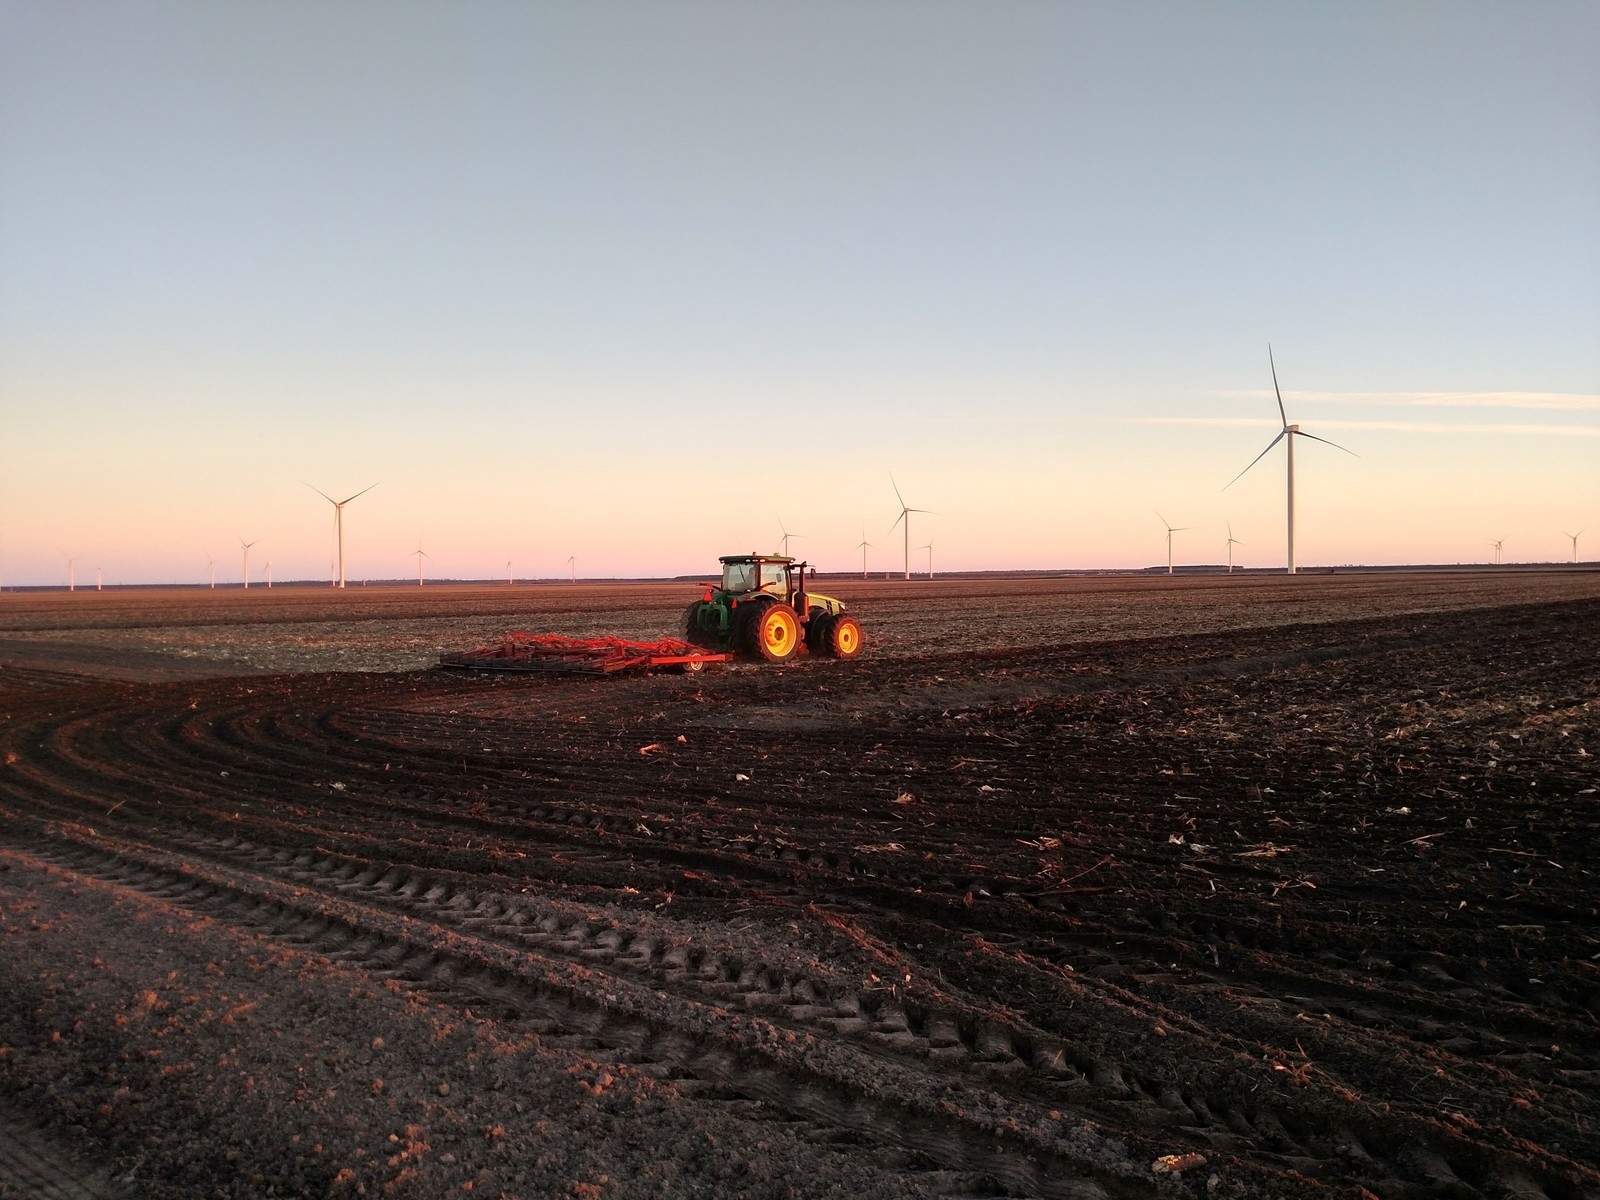 Farm equipment working in a field in front of a backdrop of wind turbines.